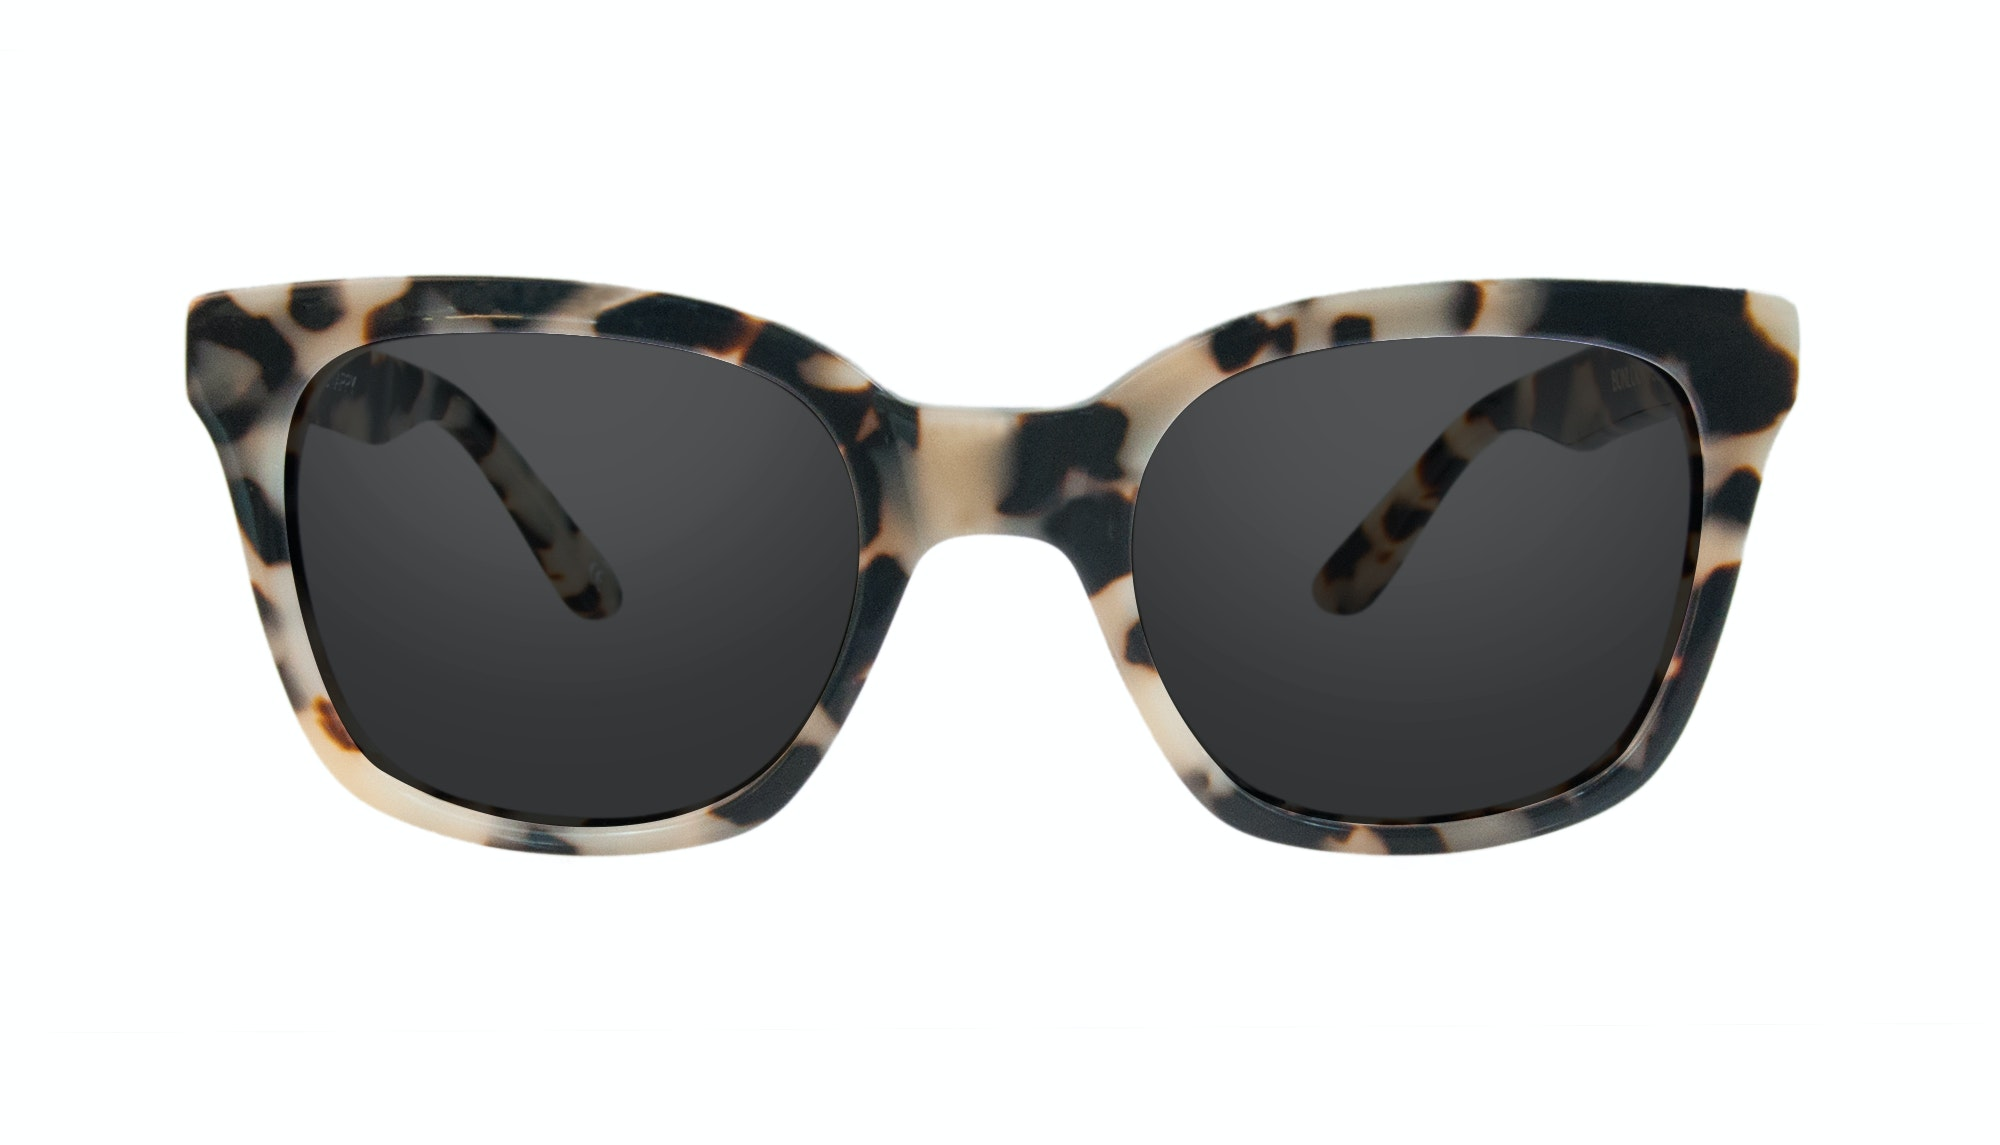 Affordable Fashion Glasses Square Sunglasses Women Jack & Norma Snappy Front